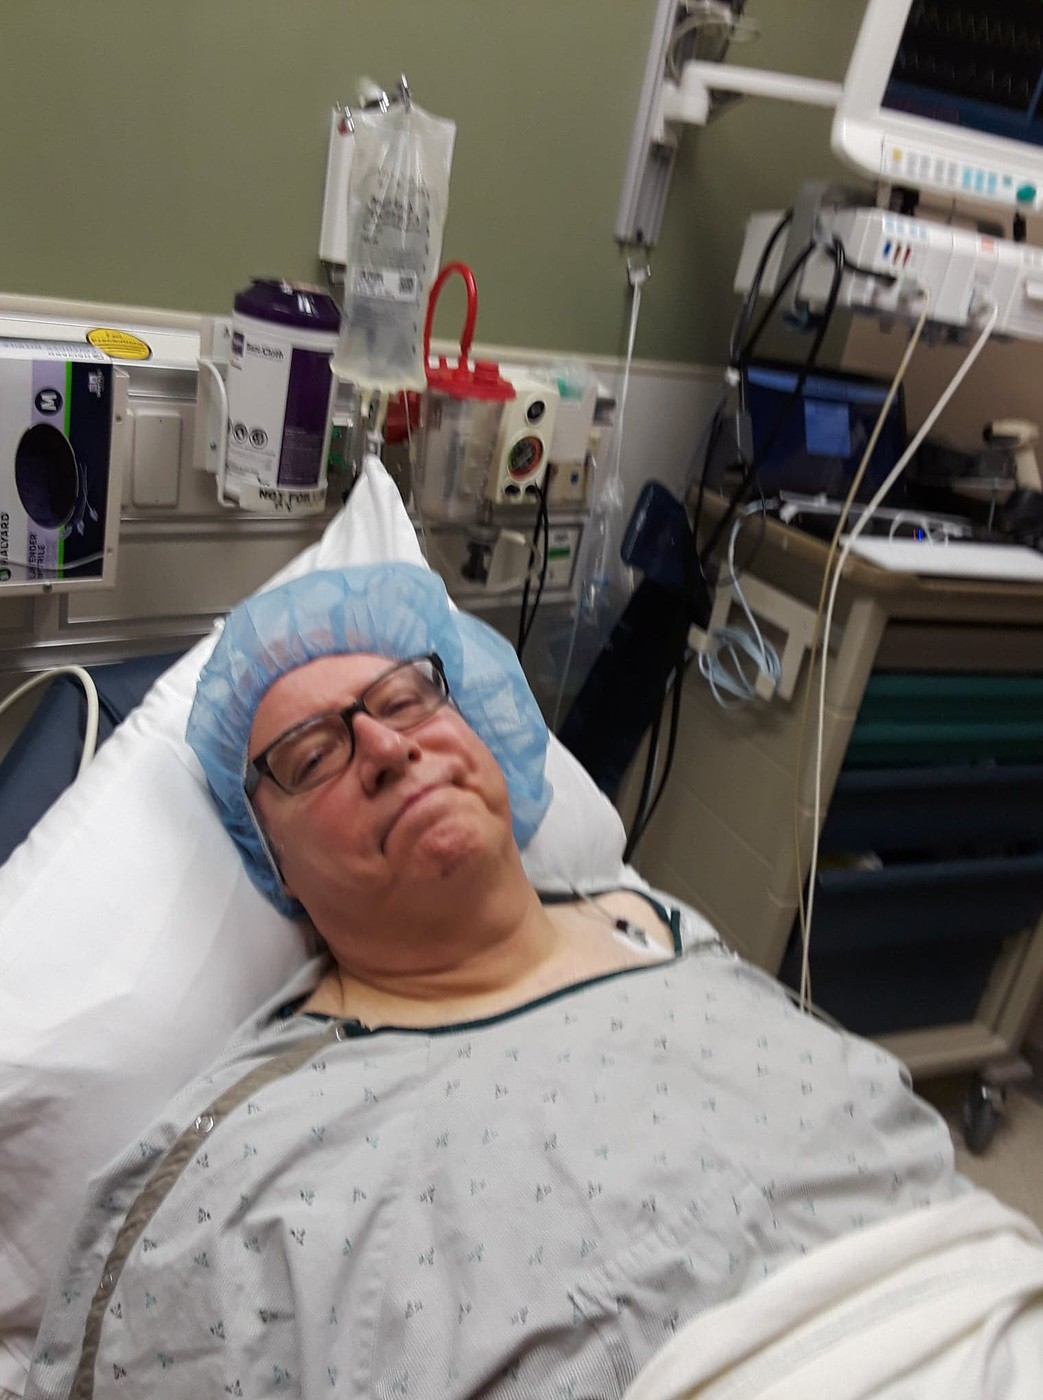 shortly before surgery